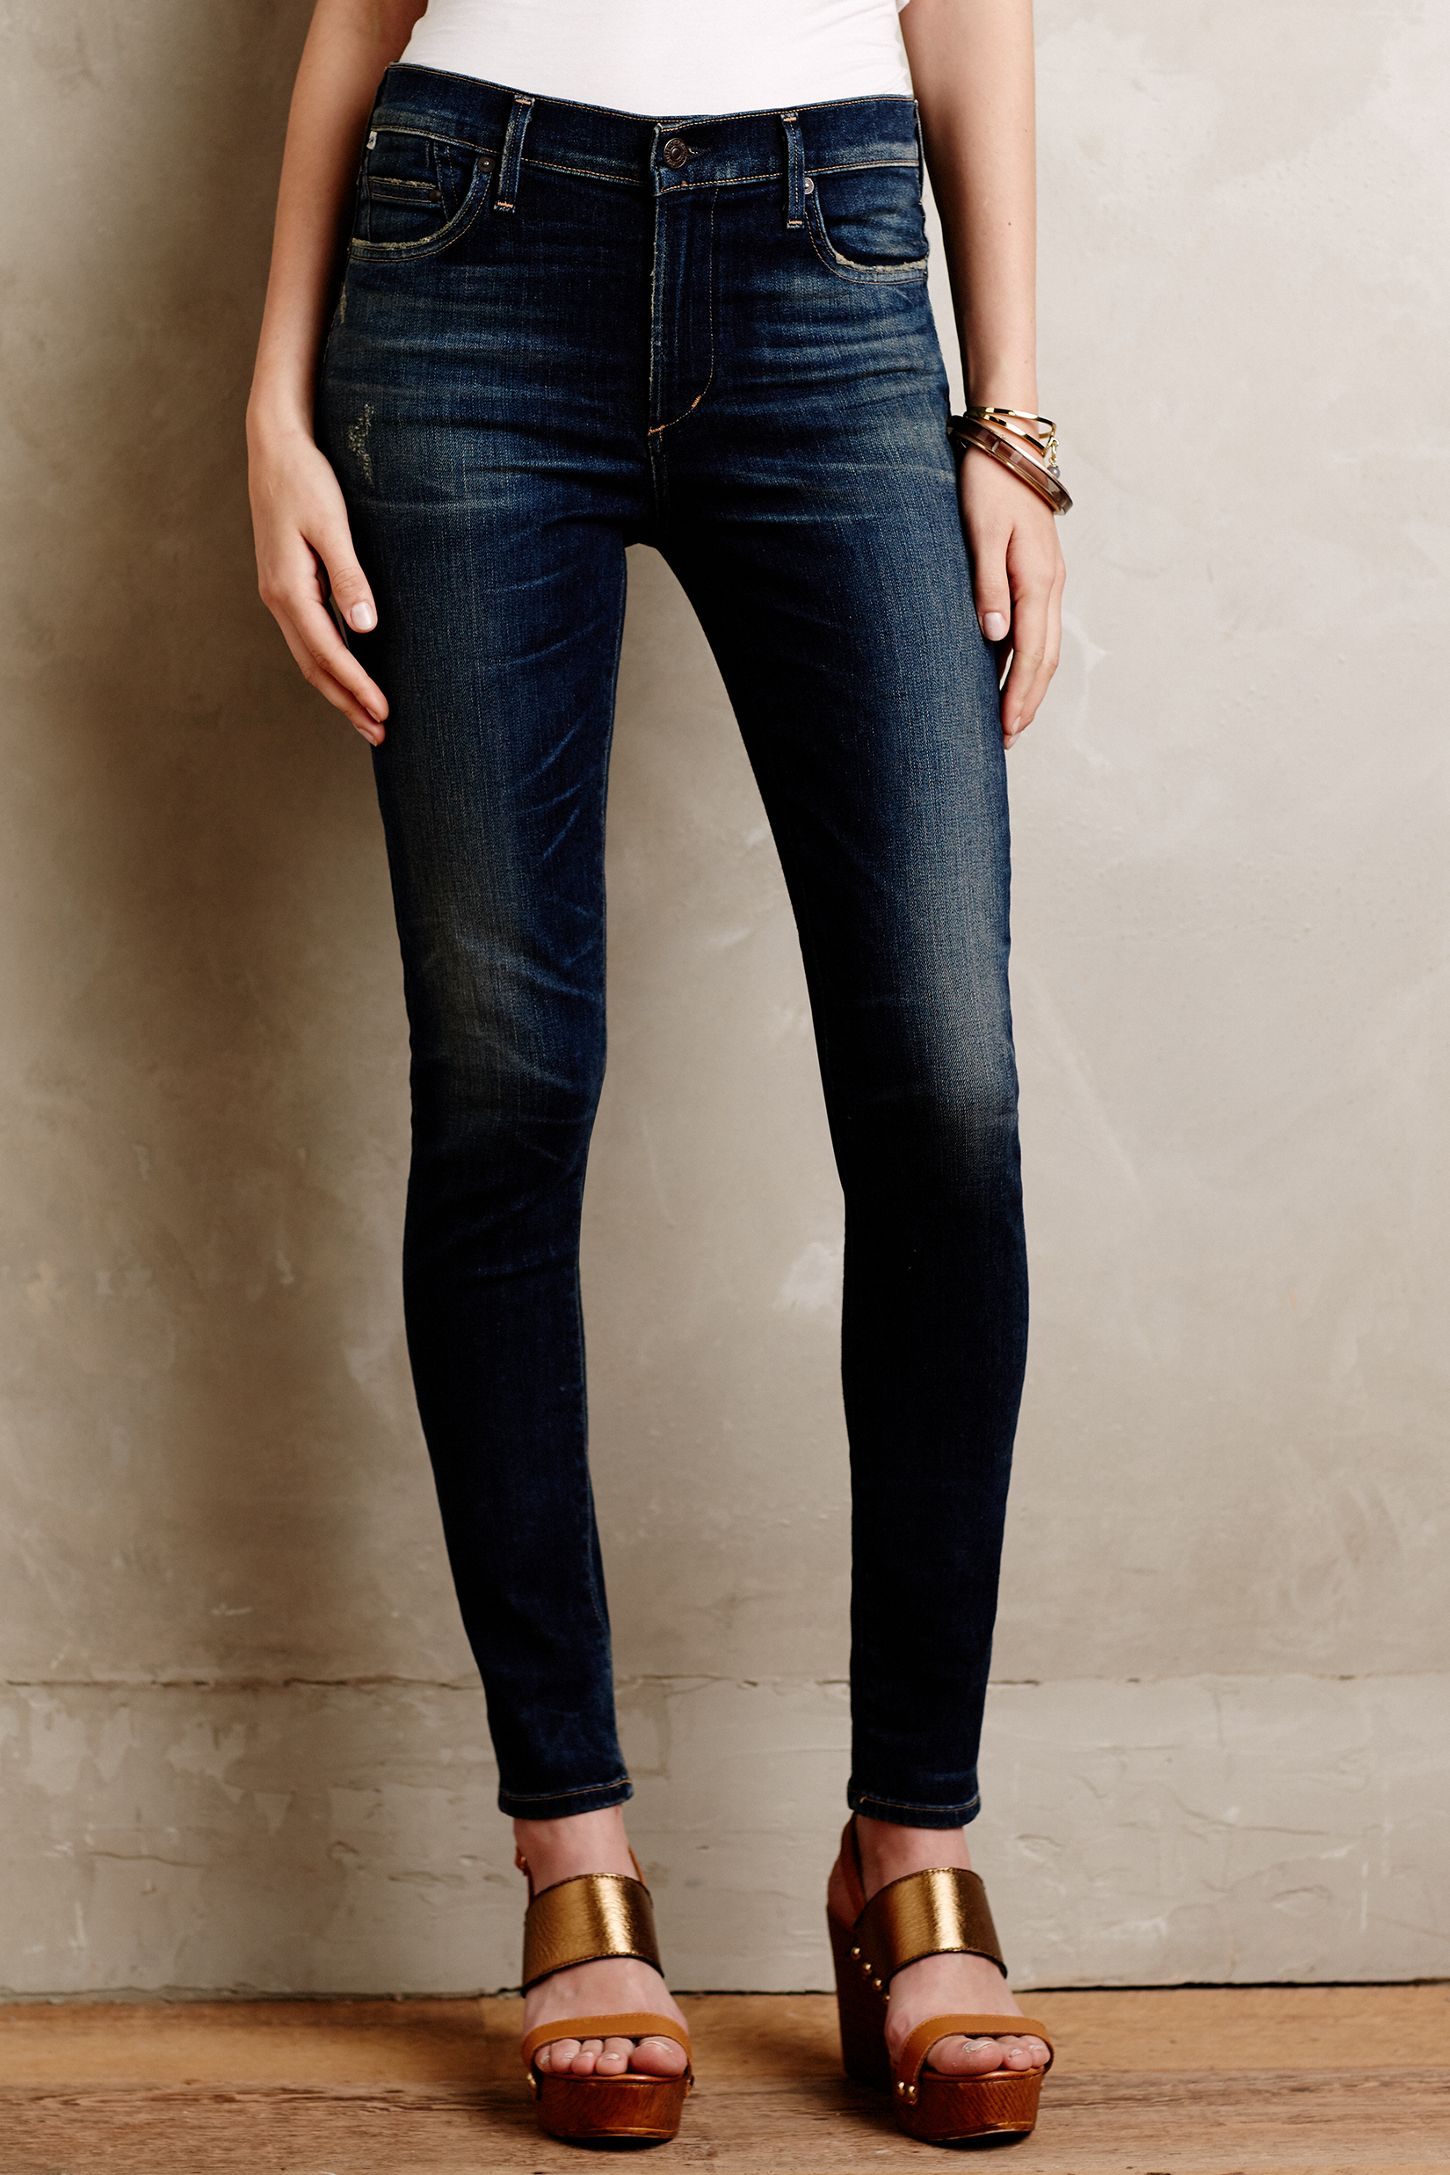 6a32054317 Citizens of Humanity Rocket High Rise Skinny Jeans | Anthropologie